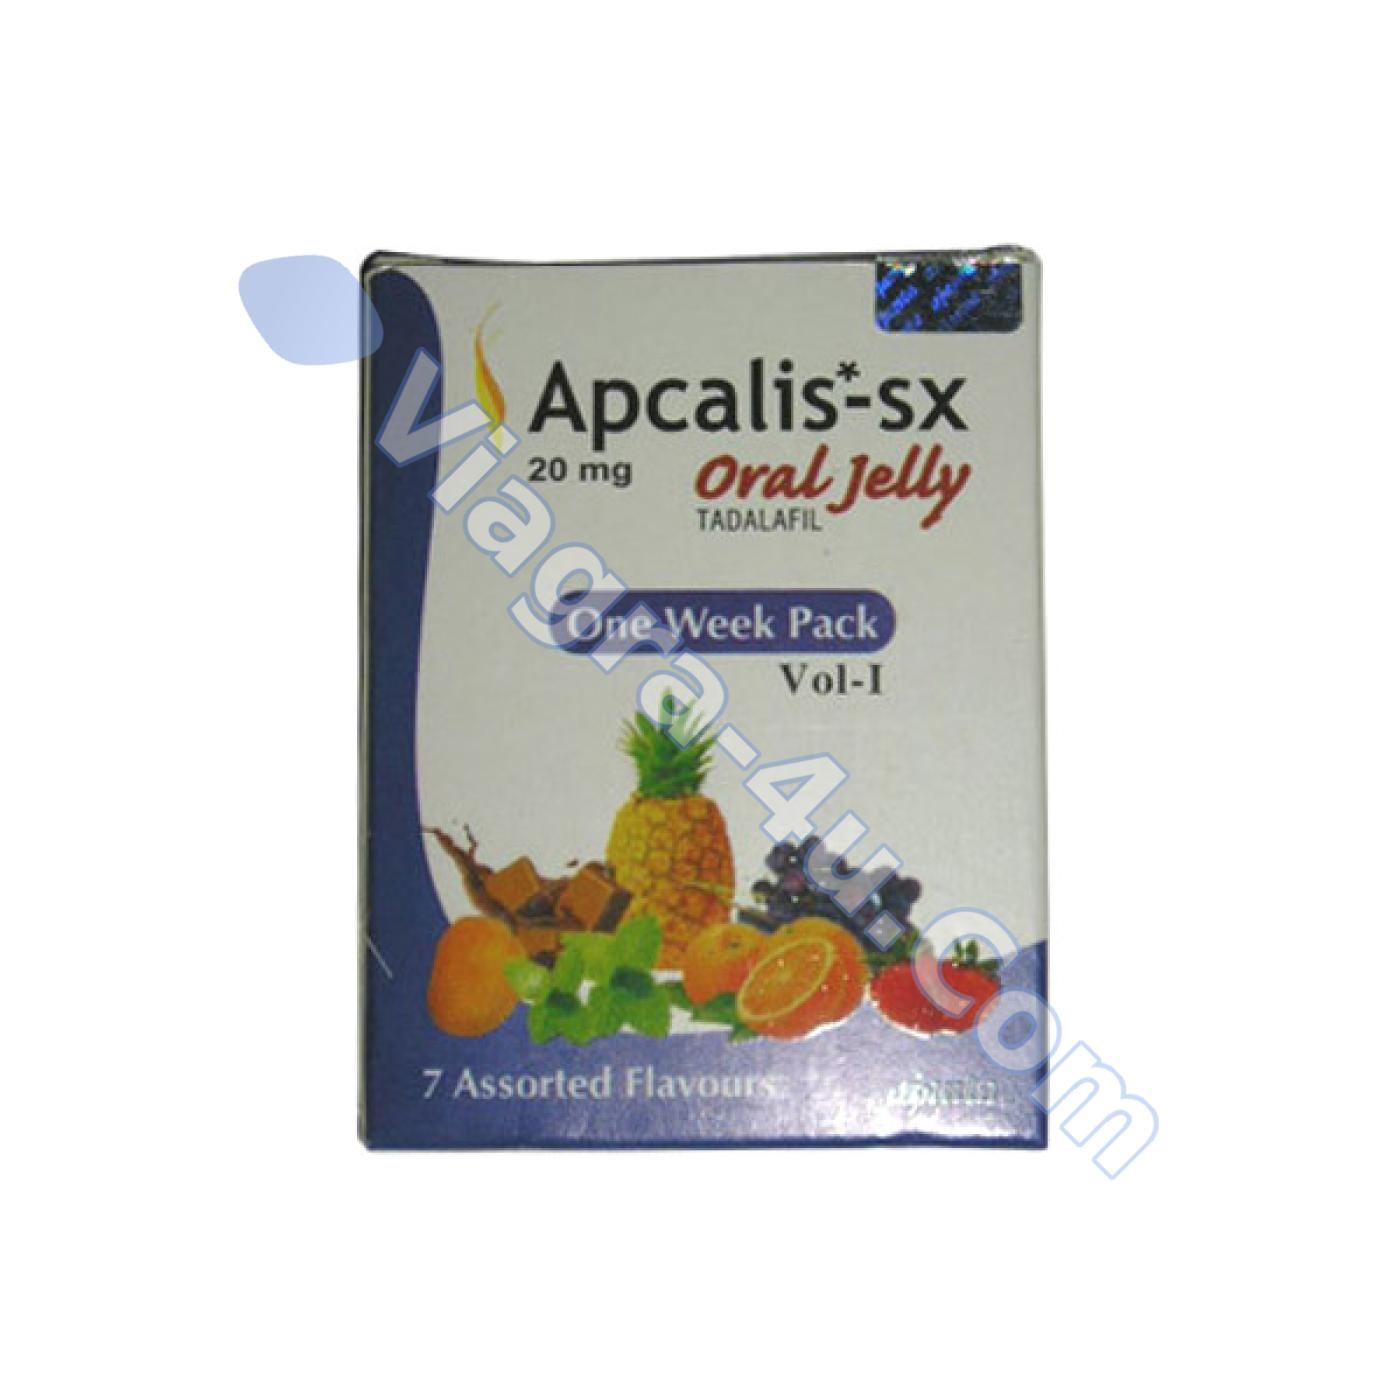 Buy Apcalis-sx Oral Jelly 20 mg without prescription